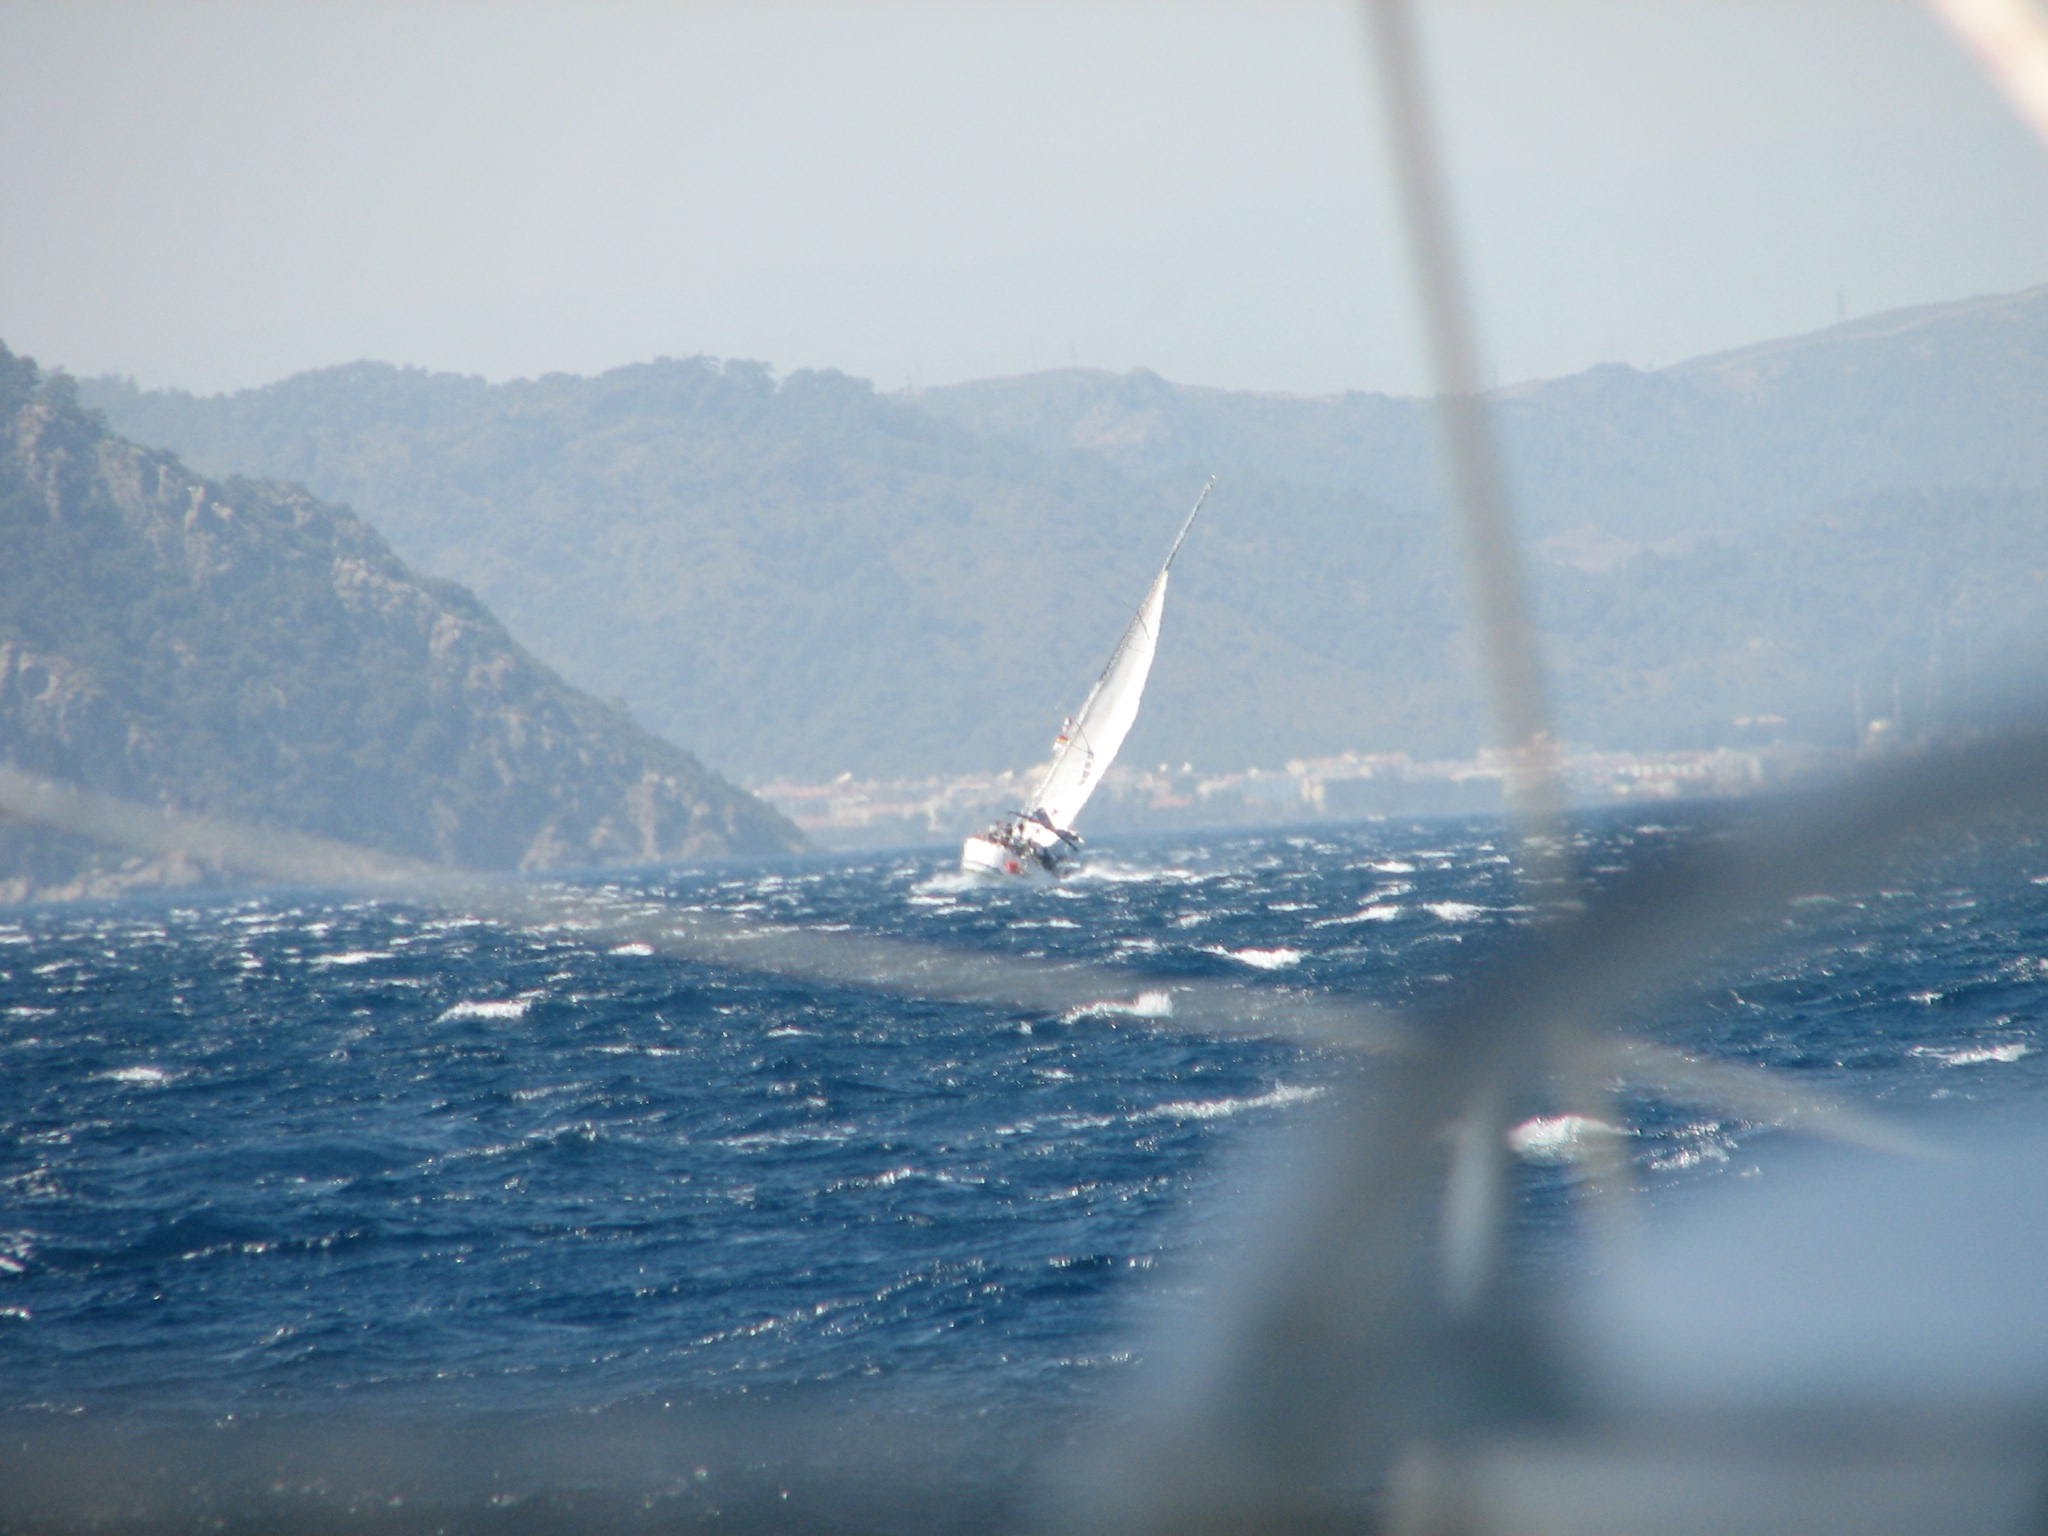 A sailboat in rough seas leaning to the right because of high winds